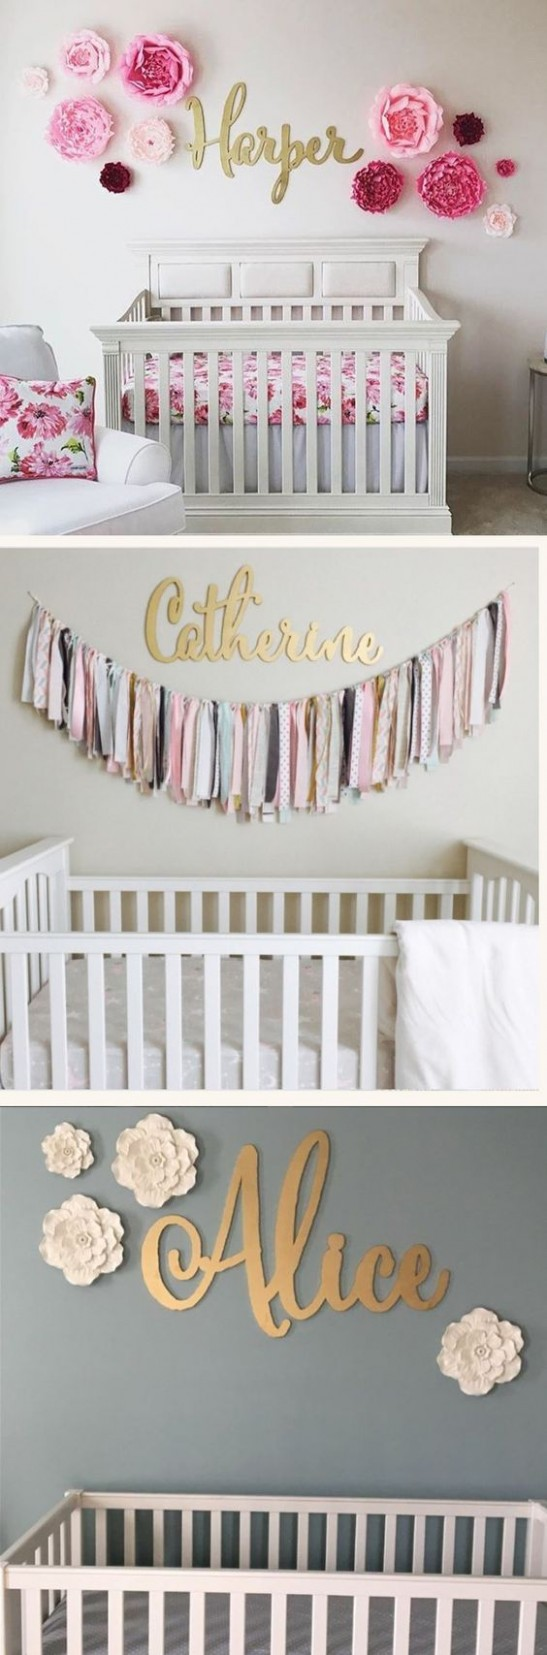 Gorgeous nursery room decoration, custom gold name signs